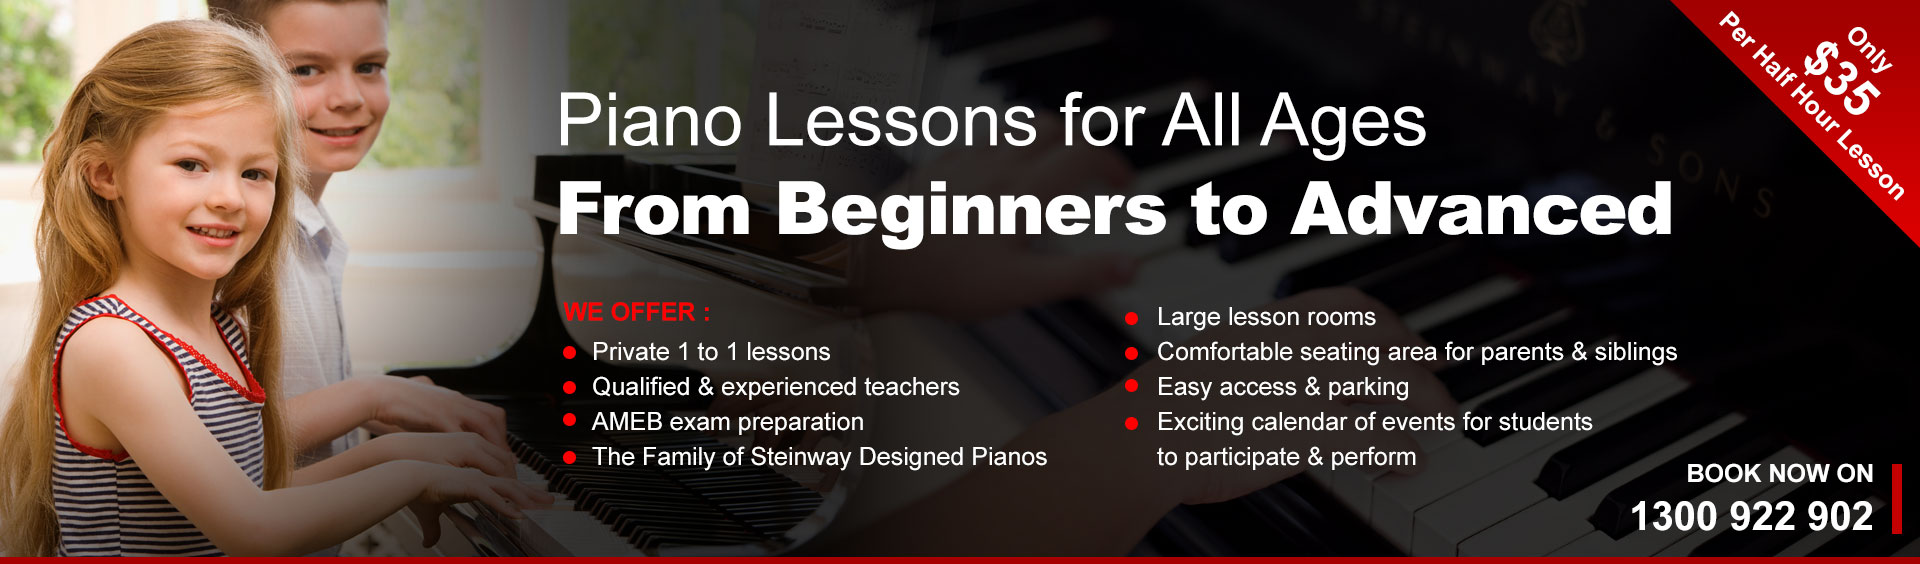 Piano_lesson_web